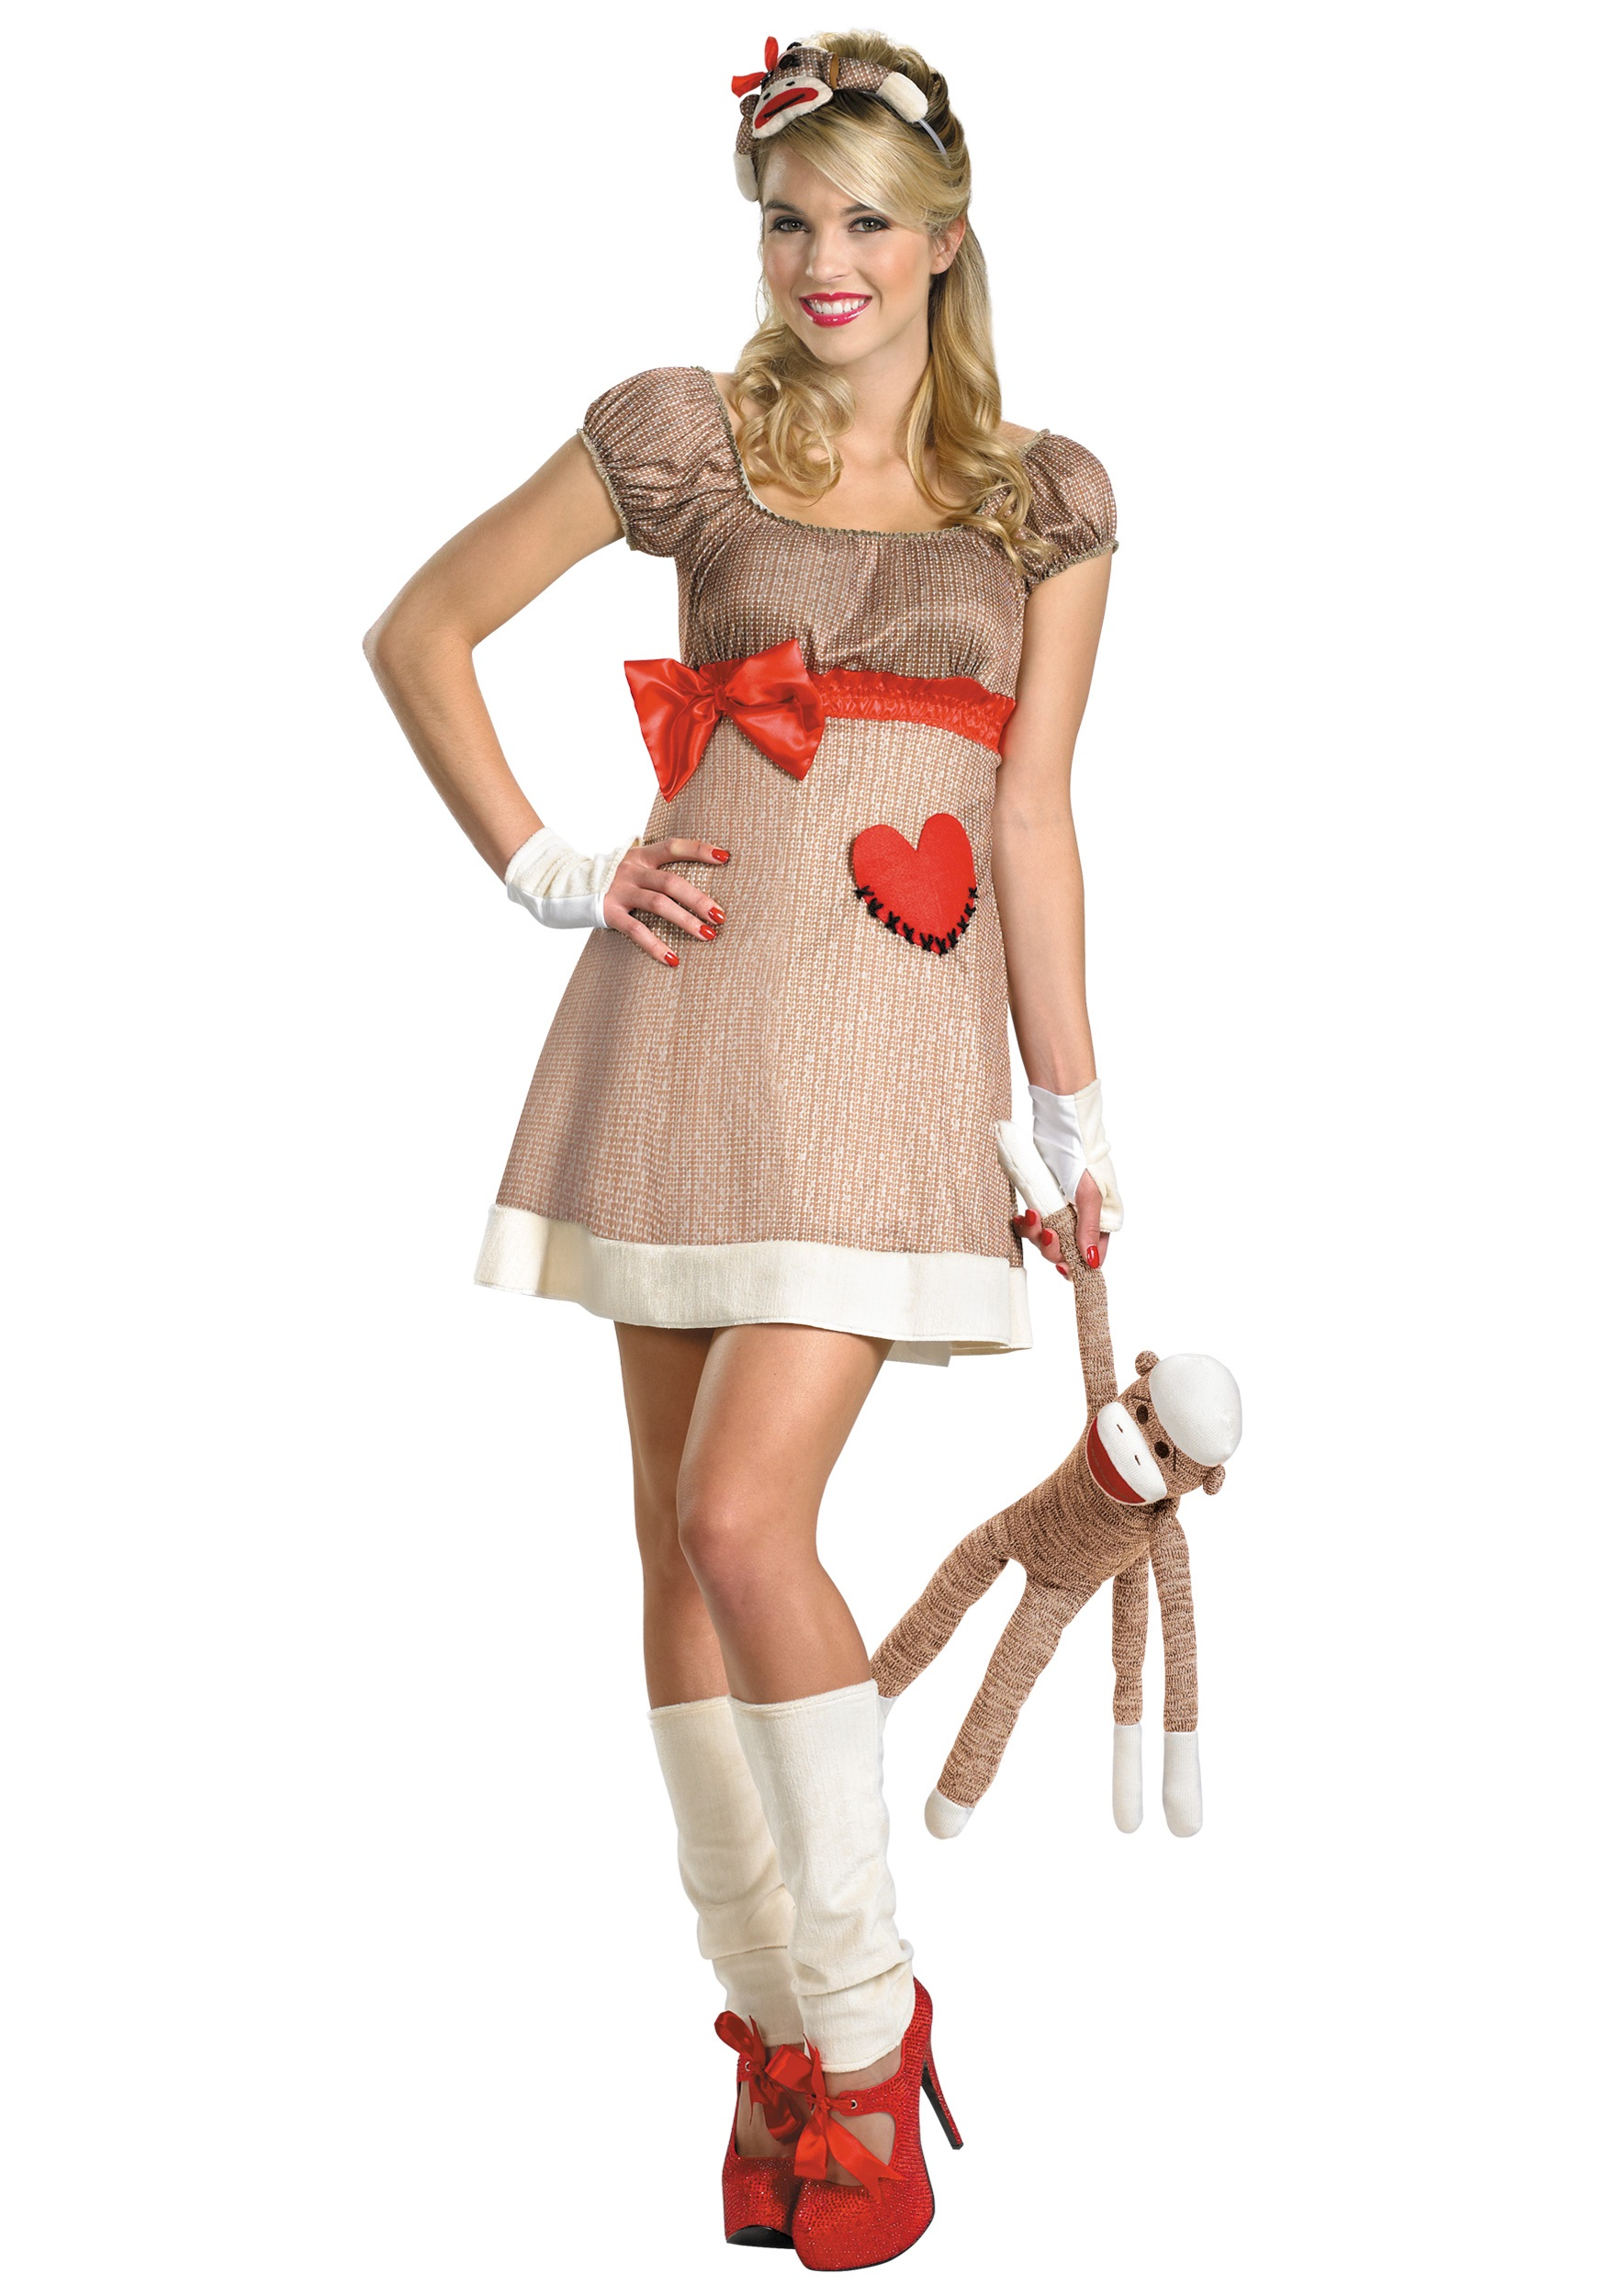 Deluxe Miss Sock Monkey Costume  sc 1 st  Halloween Costumes & Deluxe Miss Sock Monkey Costume - Halloween Costume Ideas 2016